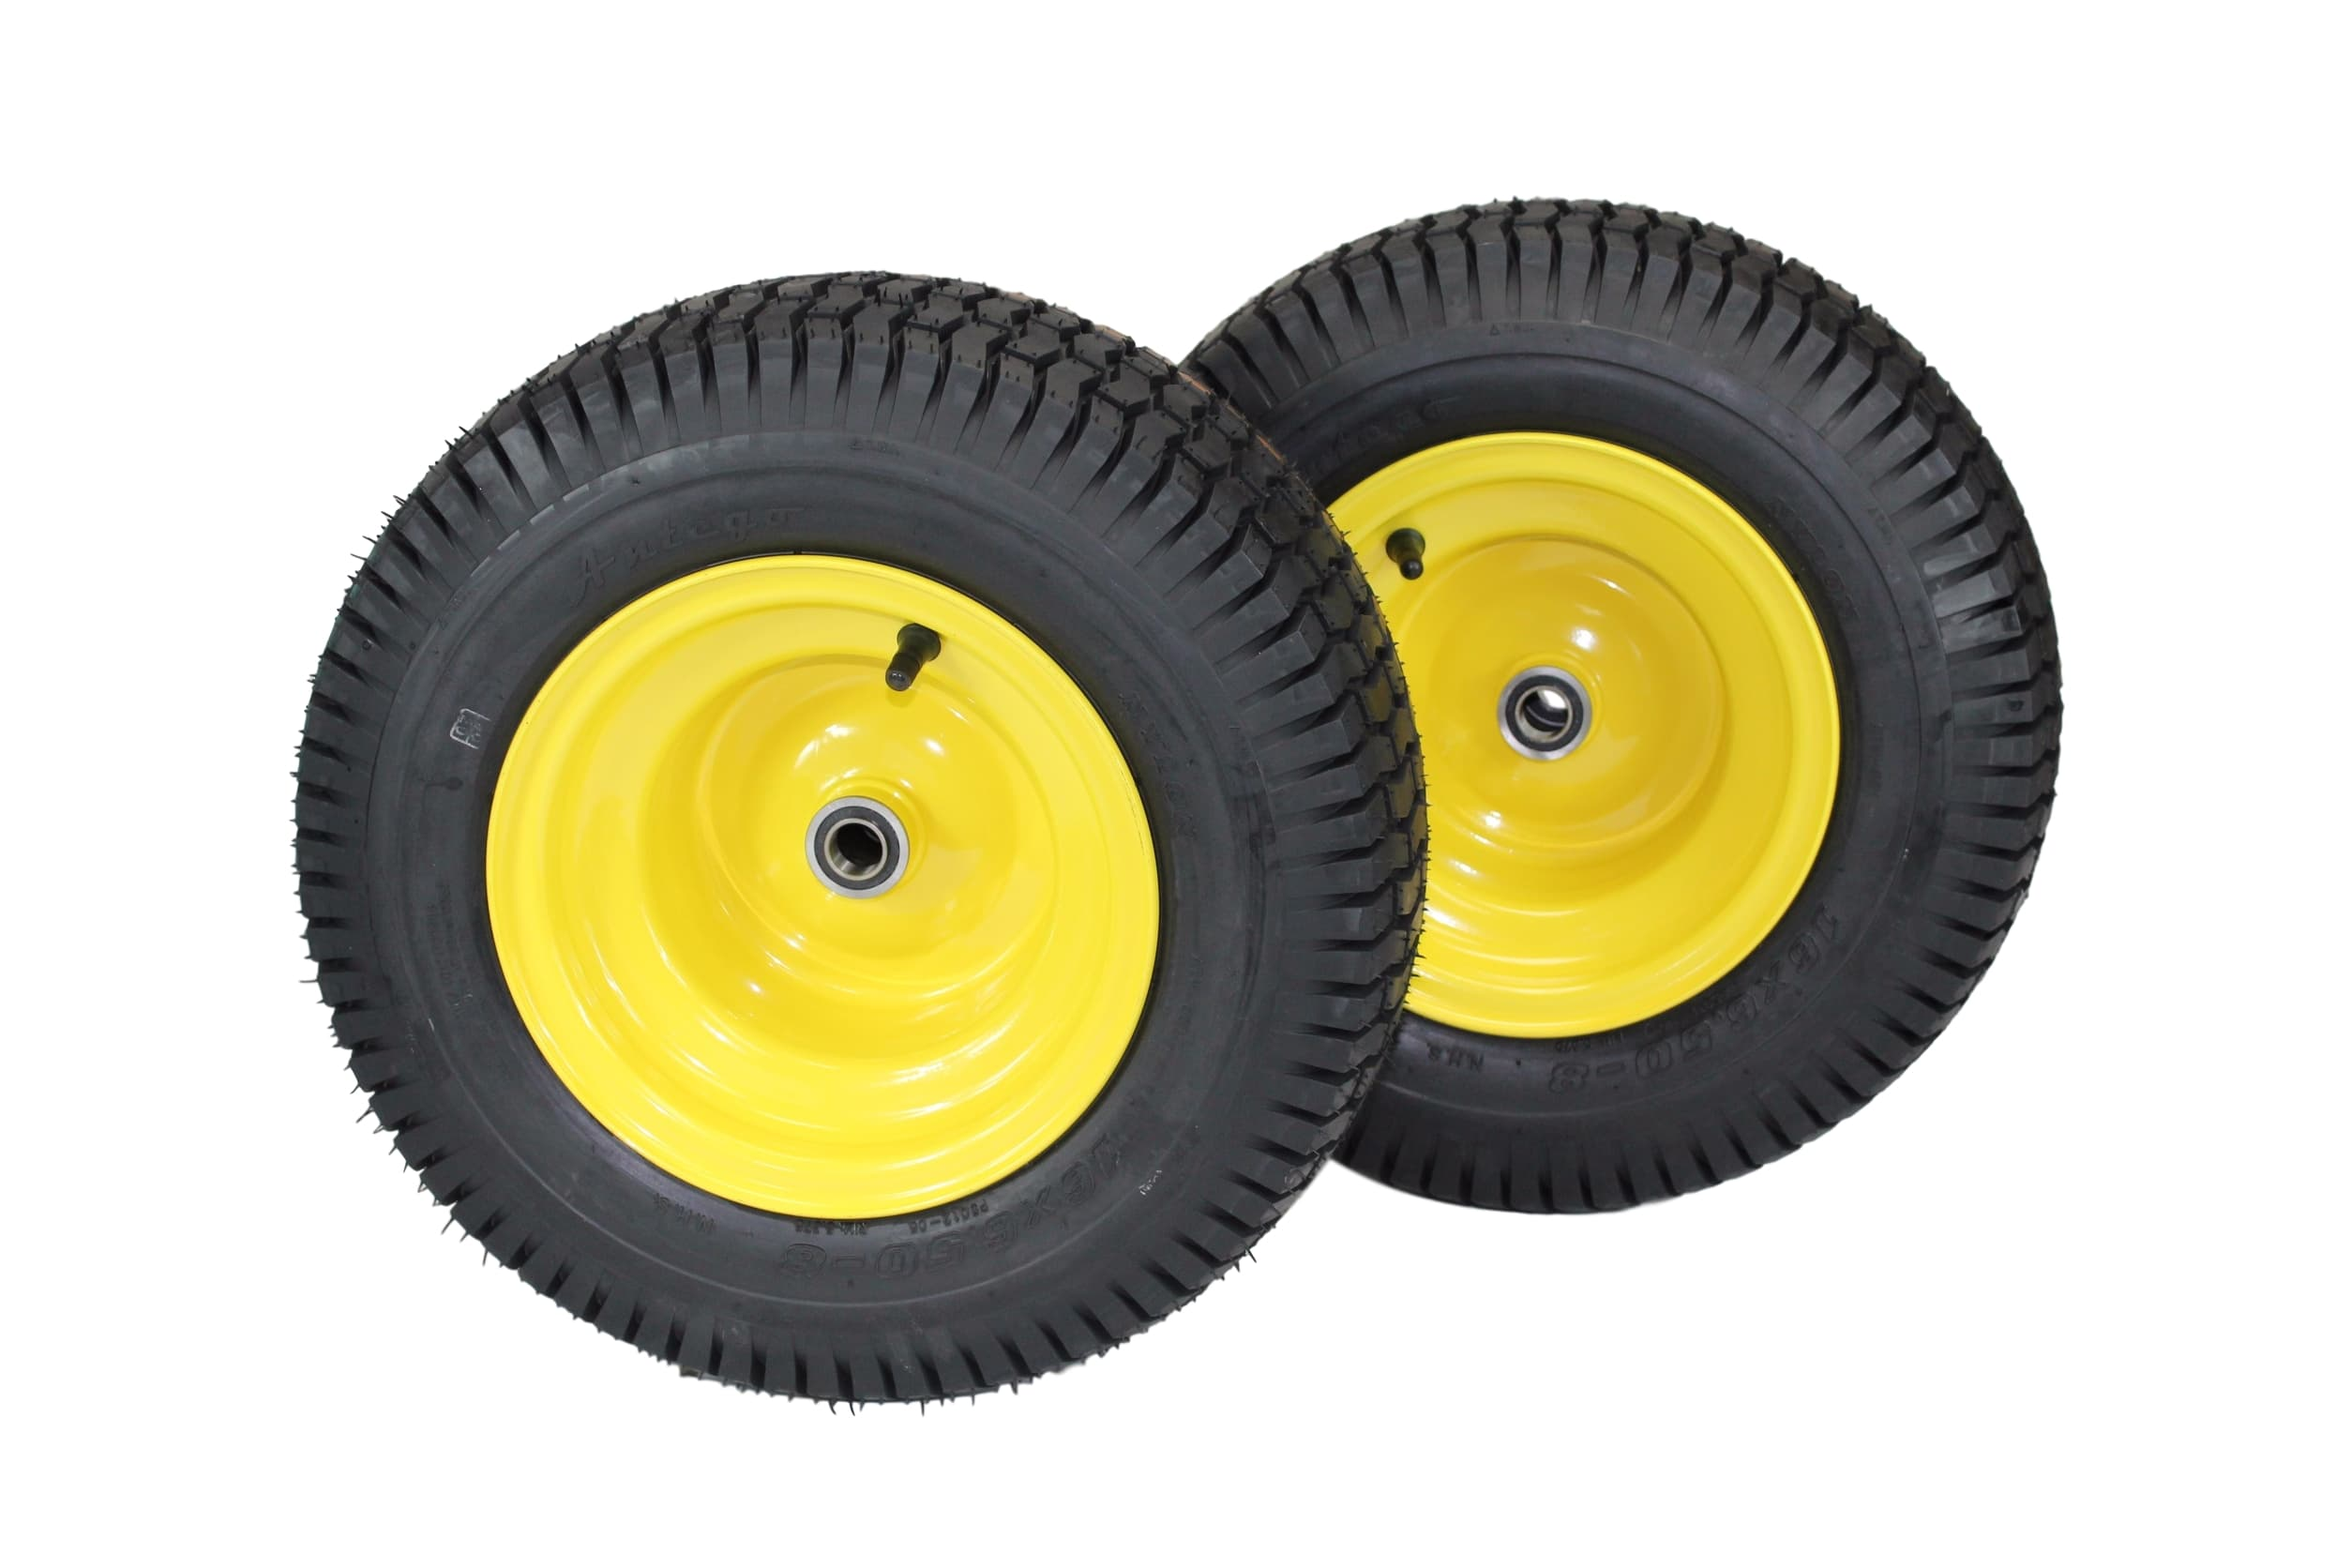 "(Set of 2) 16x6.50-8 John Deere Yellow Tires & Wheels 4 Ply for Lawn & Garden Mower Turf Tires .75""... by Antego Tire %26 Wheel"